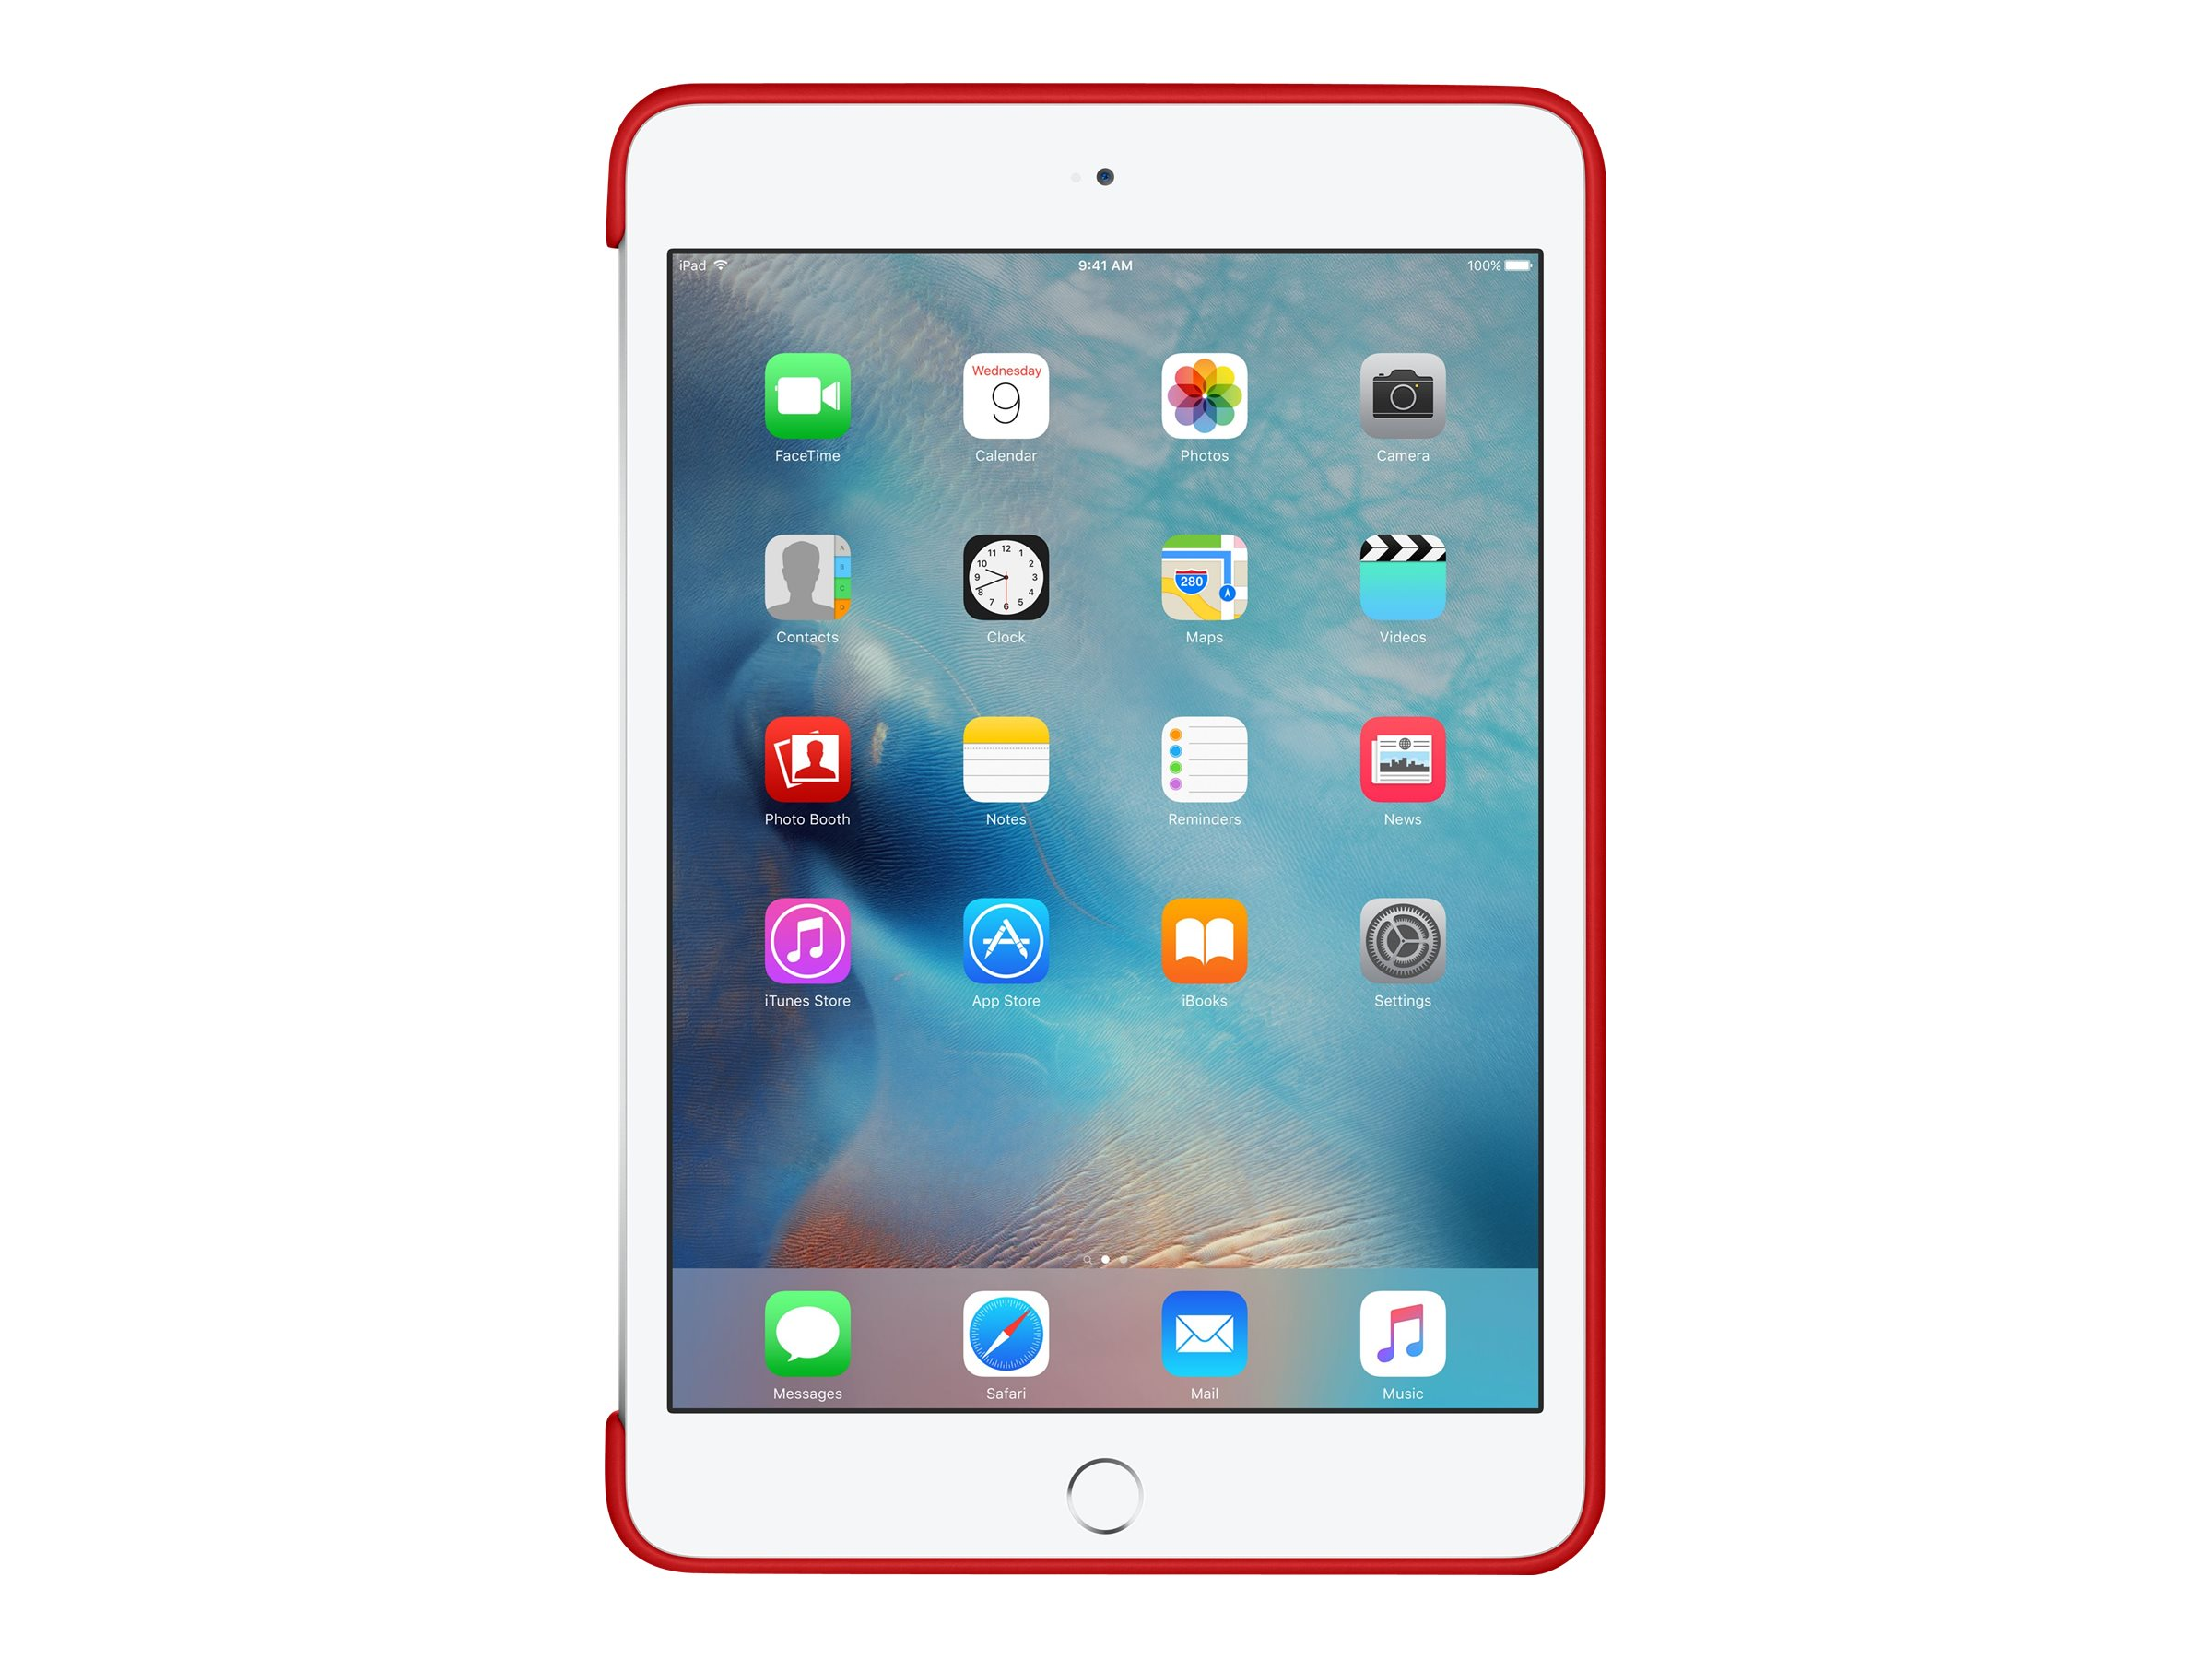 Apple Silicone Case for iPad mini 4, Red, MKLN2ZM/A, 32668638, Carrying Cases - Tablets & eReaders